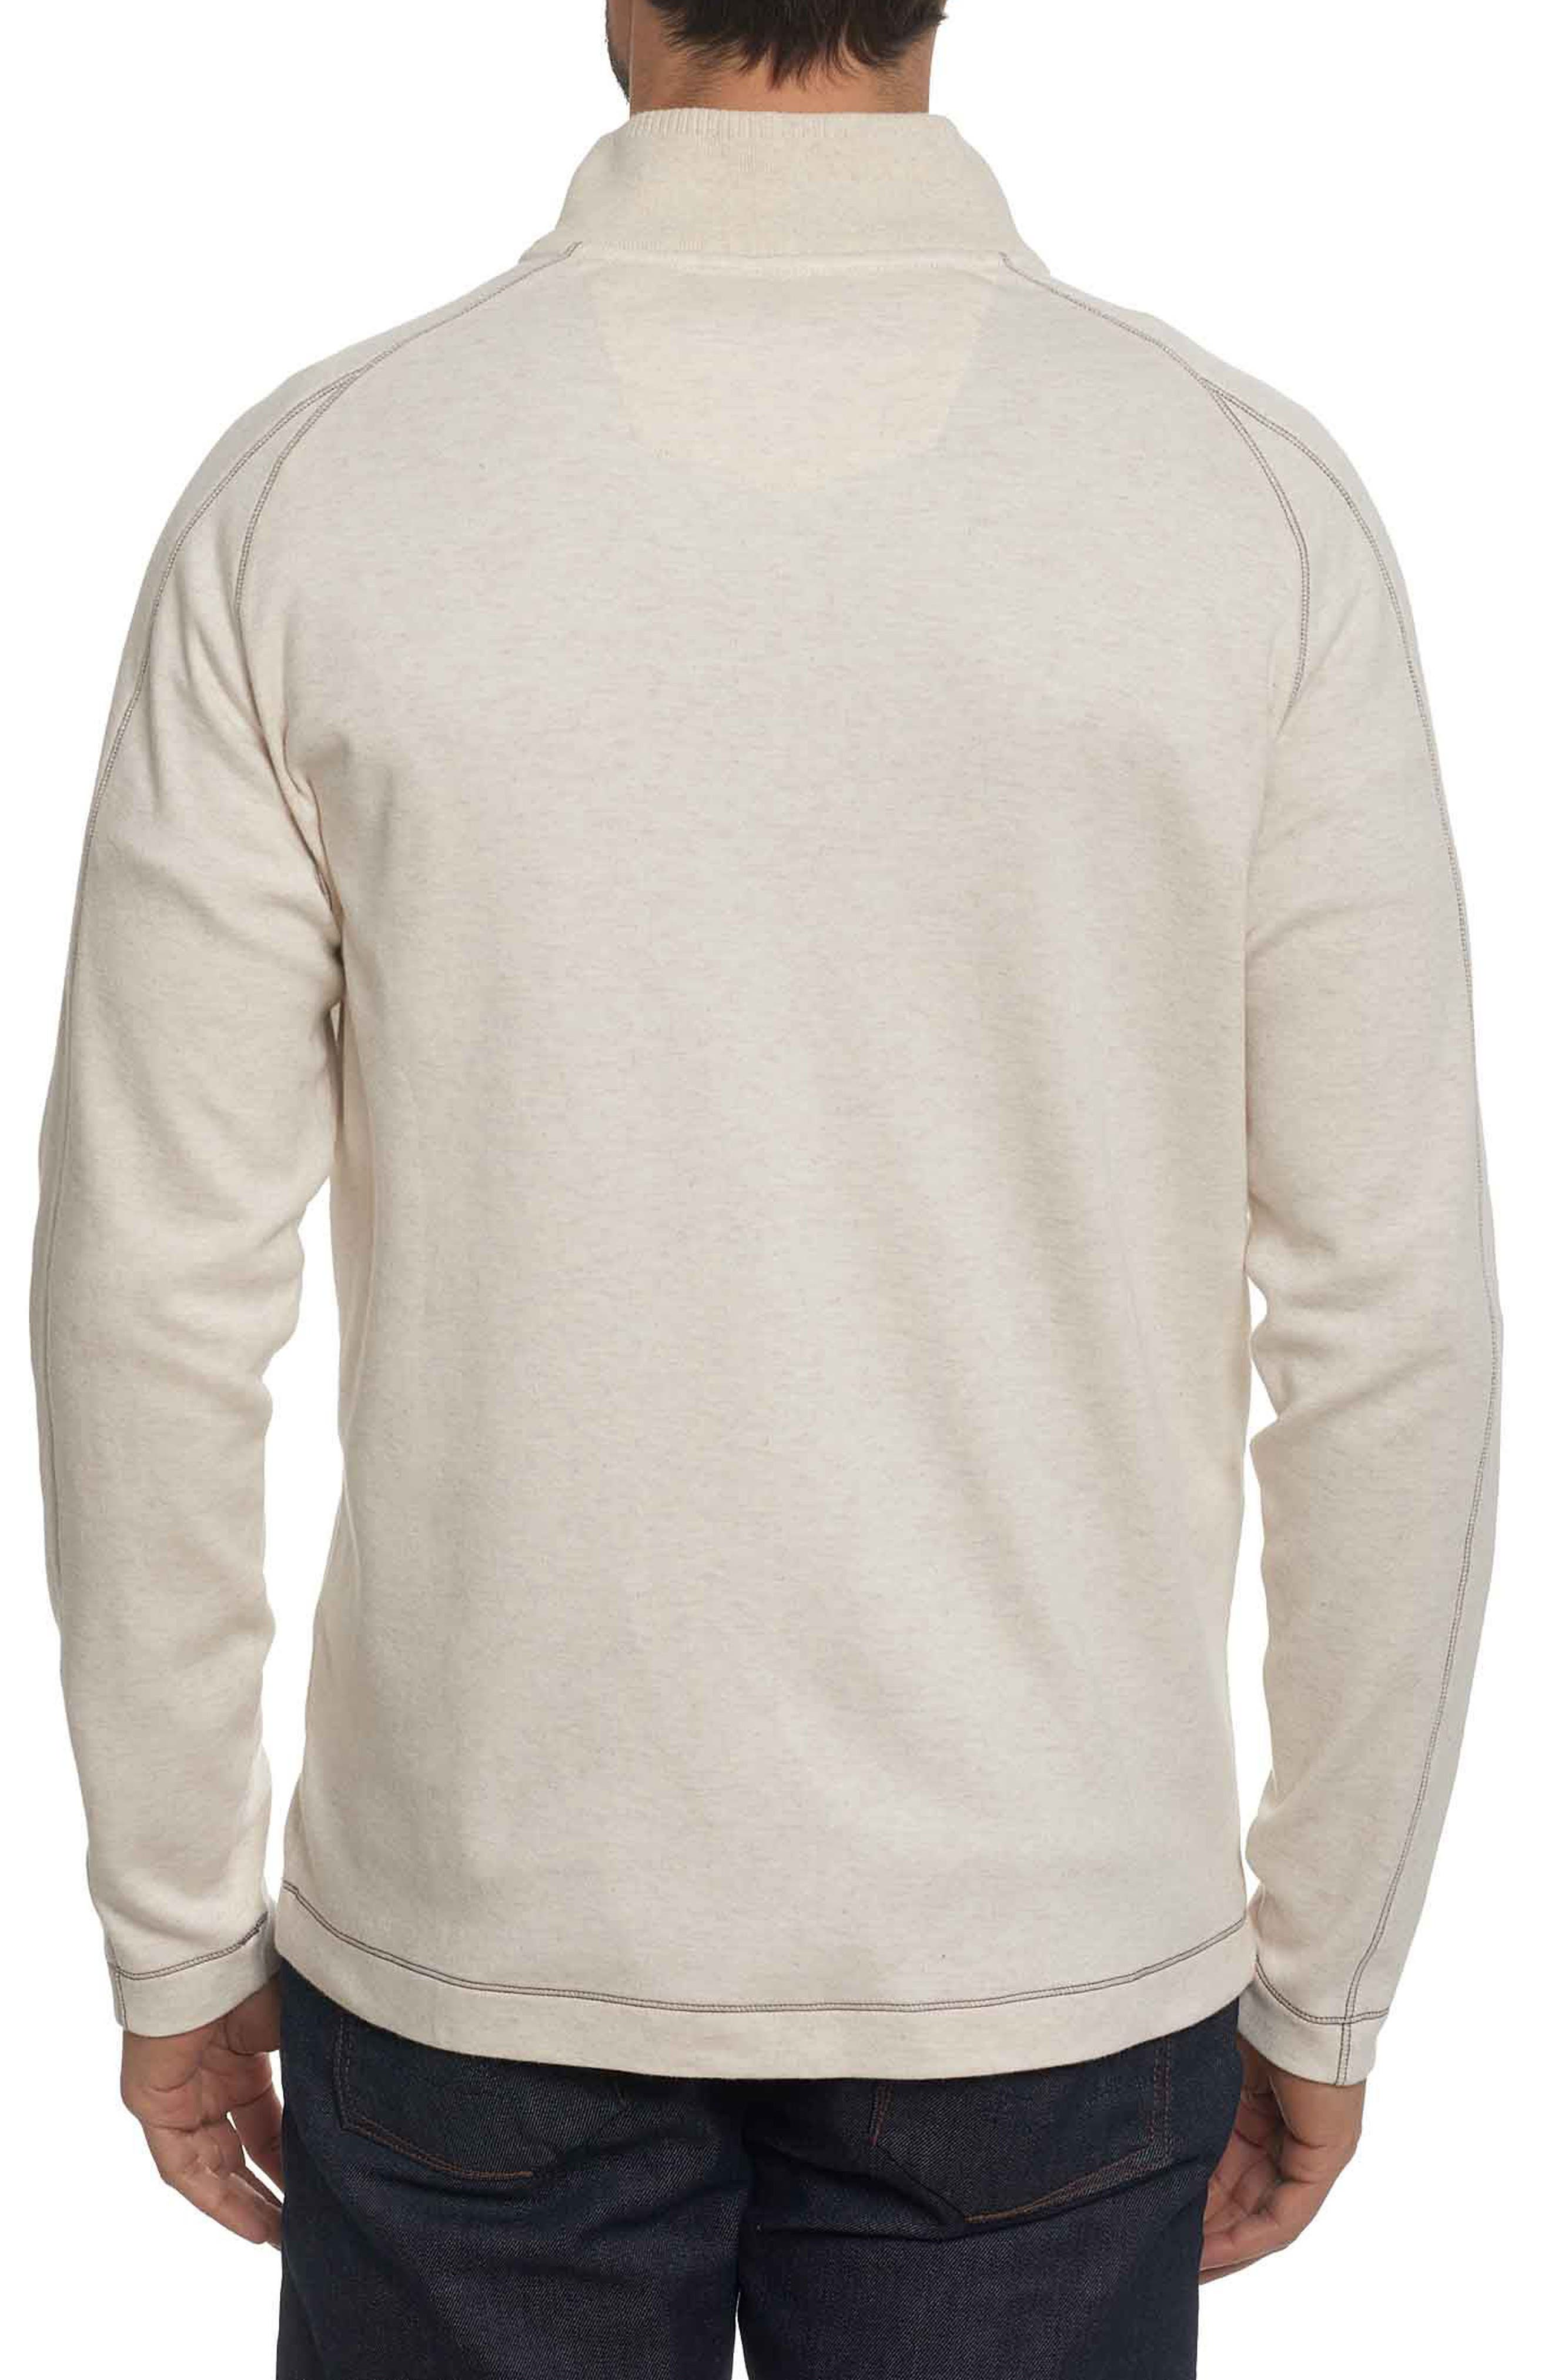 'Elia' Regular Fit Quarter Zip Pullover,                             Alternate thumbnail 2, color,                             113